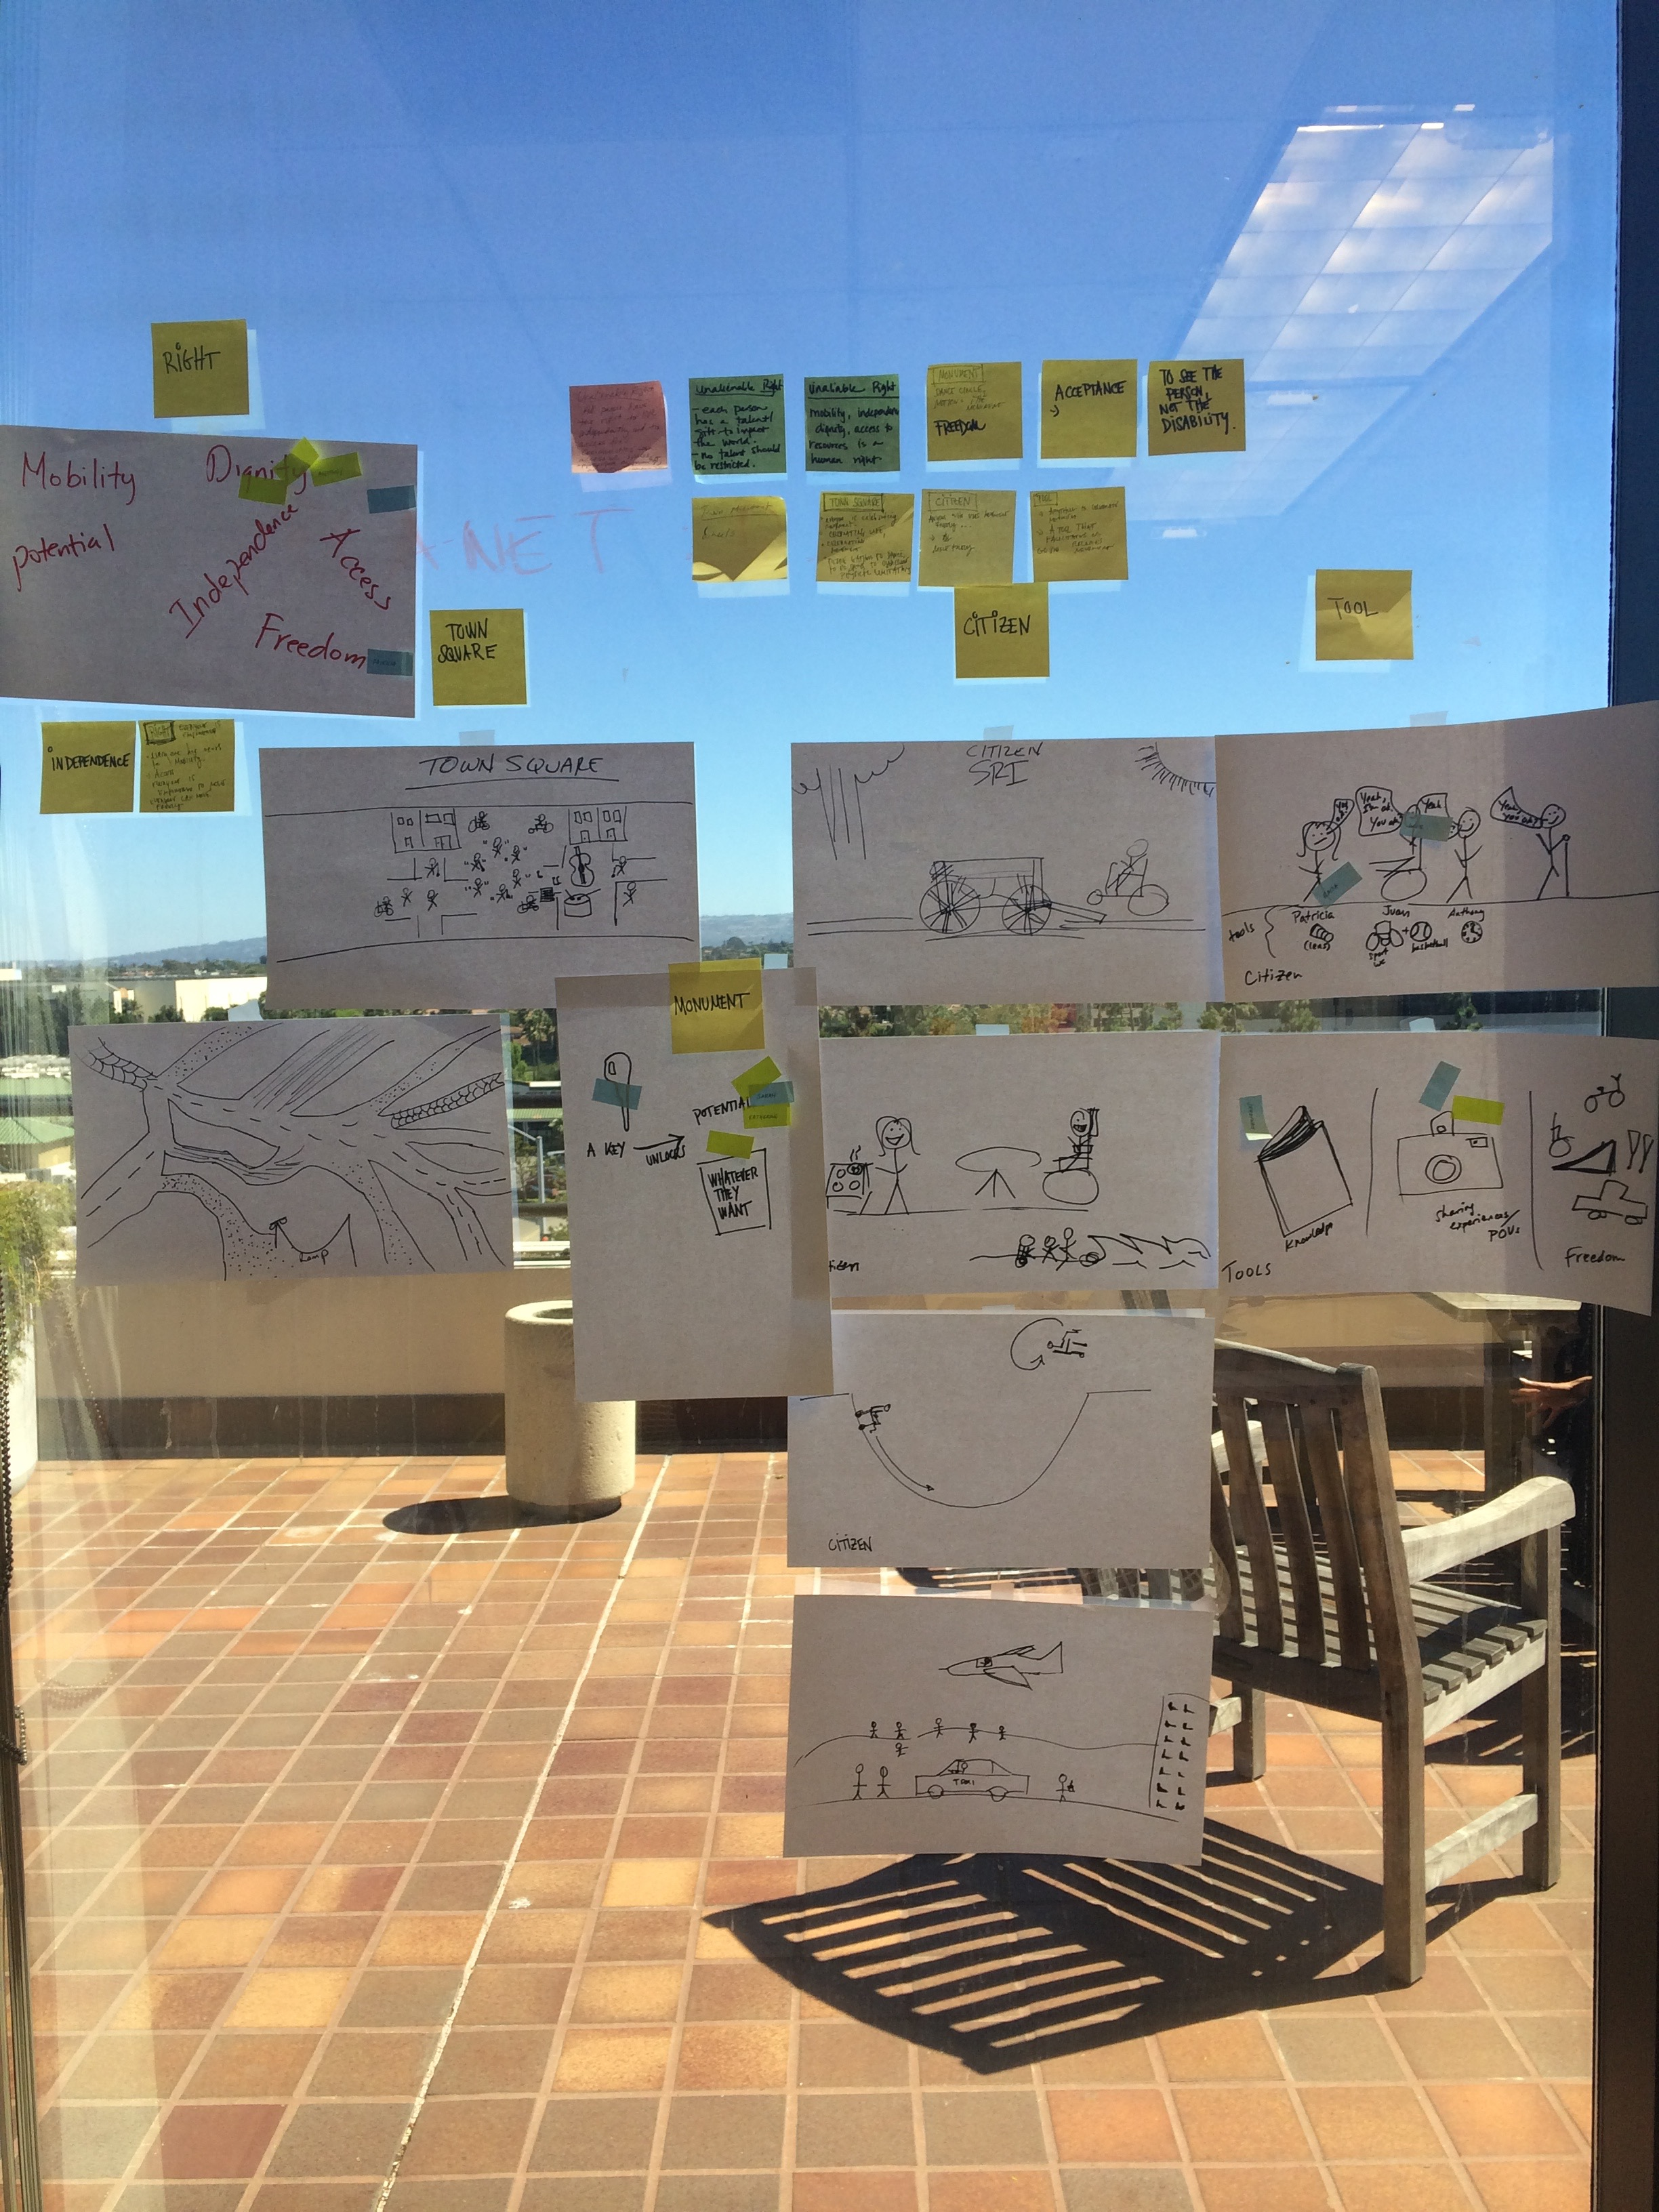 Notes from Discovery Session with Leadership Team